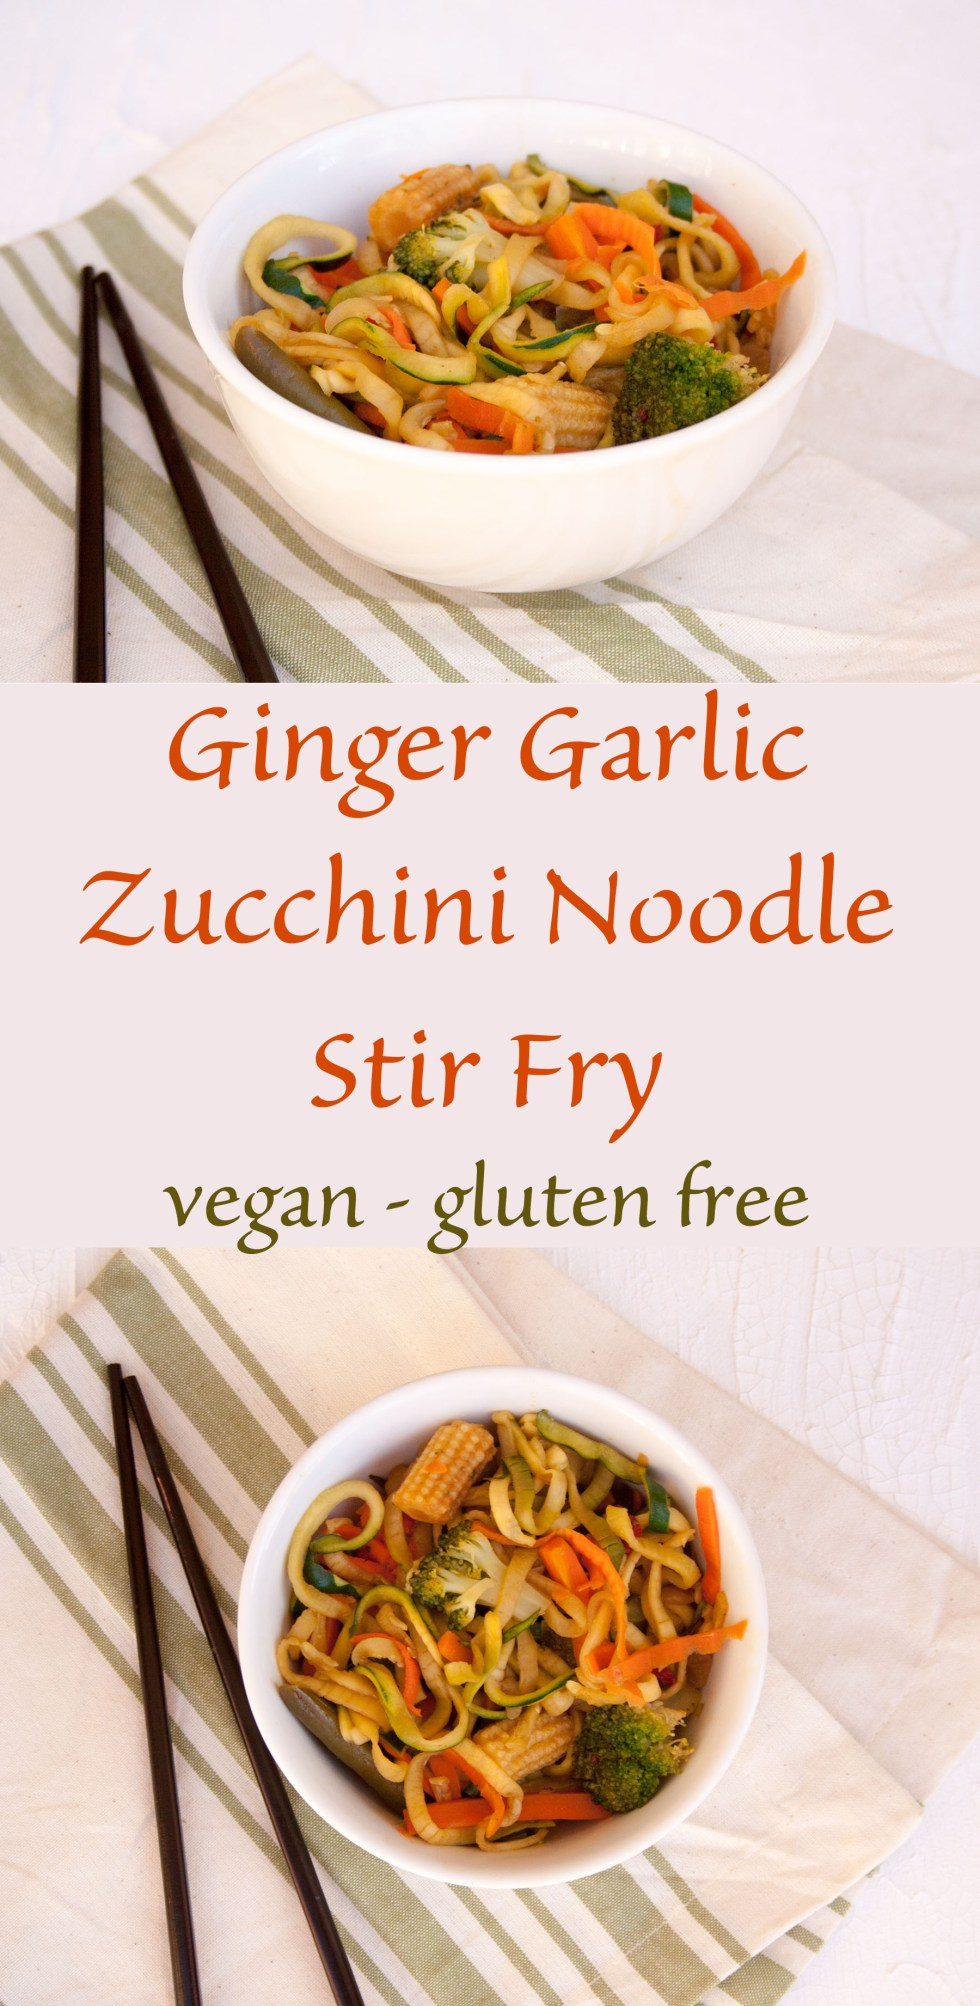 Ginger Garlic Zucchini Noodle Stir Fry (vegan, gluten free) - This healthy stir fry makes a perfect side dish. Add some cashews or tofu and it makes a perfect meal!